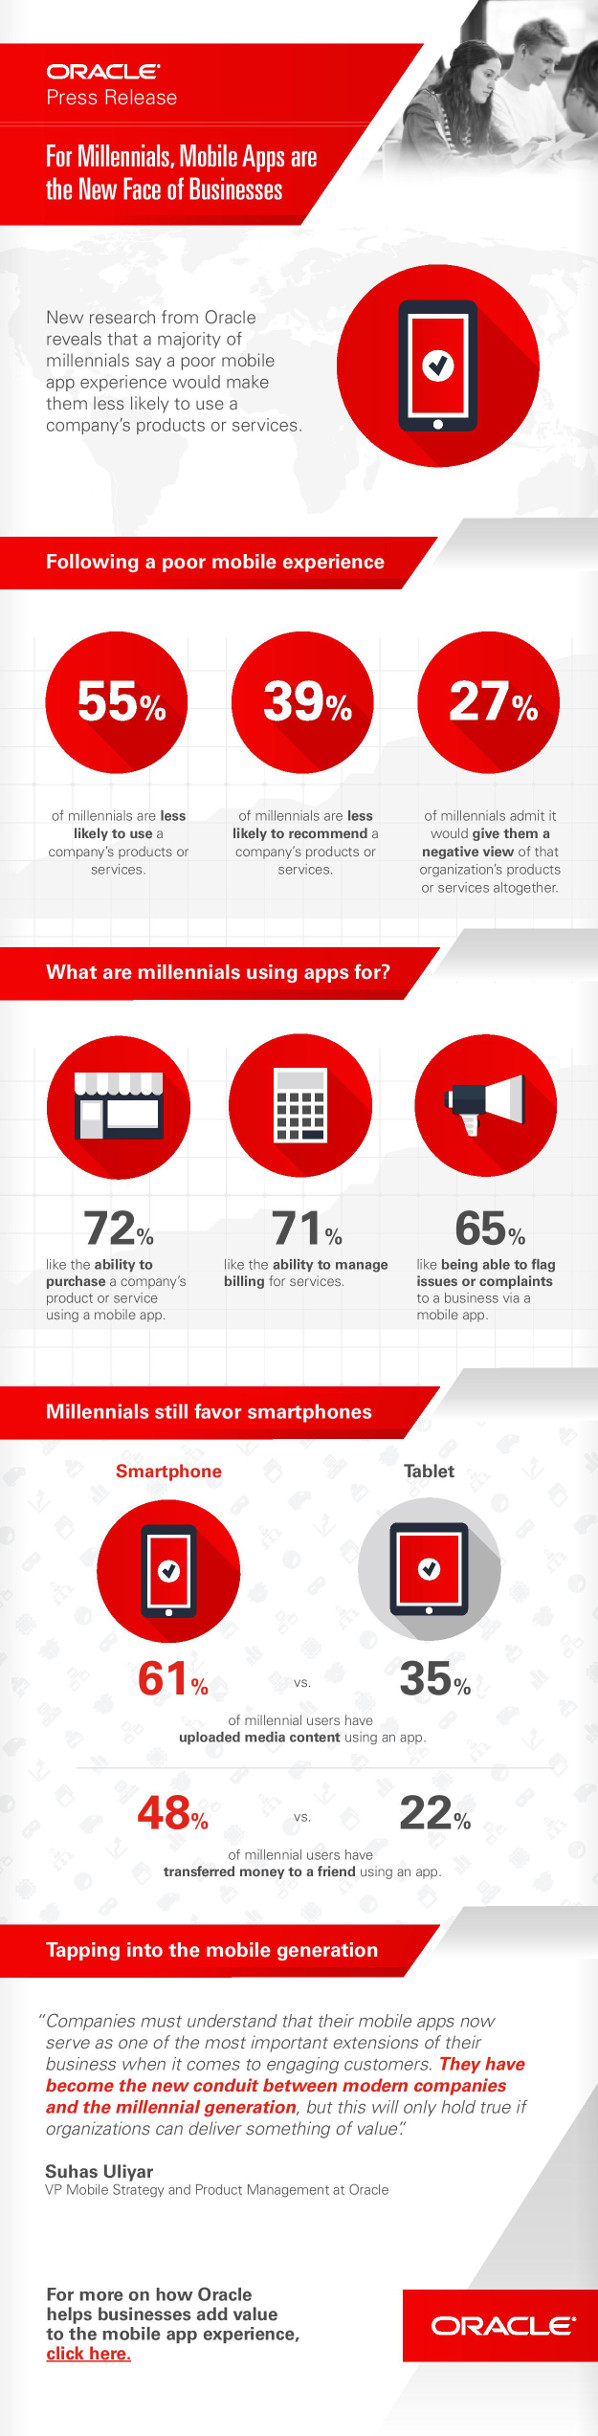 infographic-mobile-millennials-Oracle-1